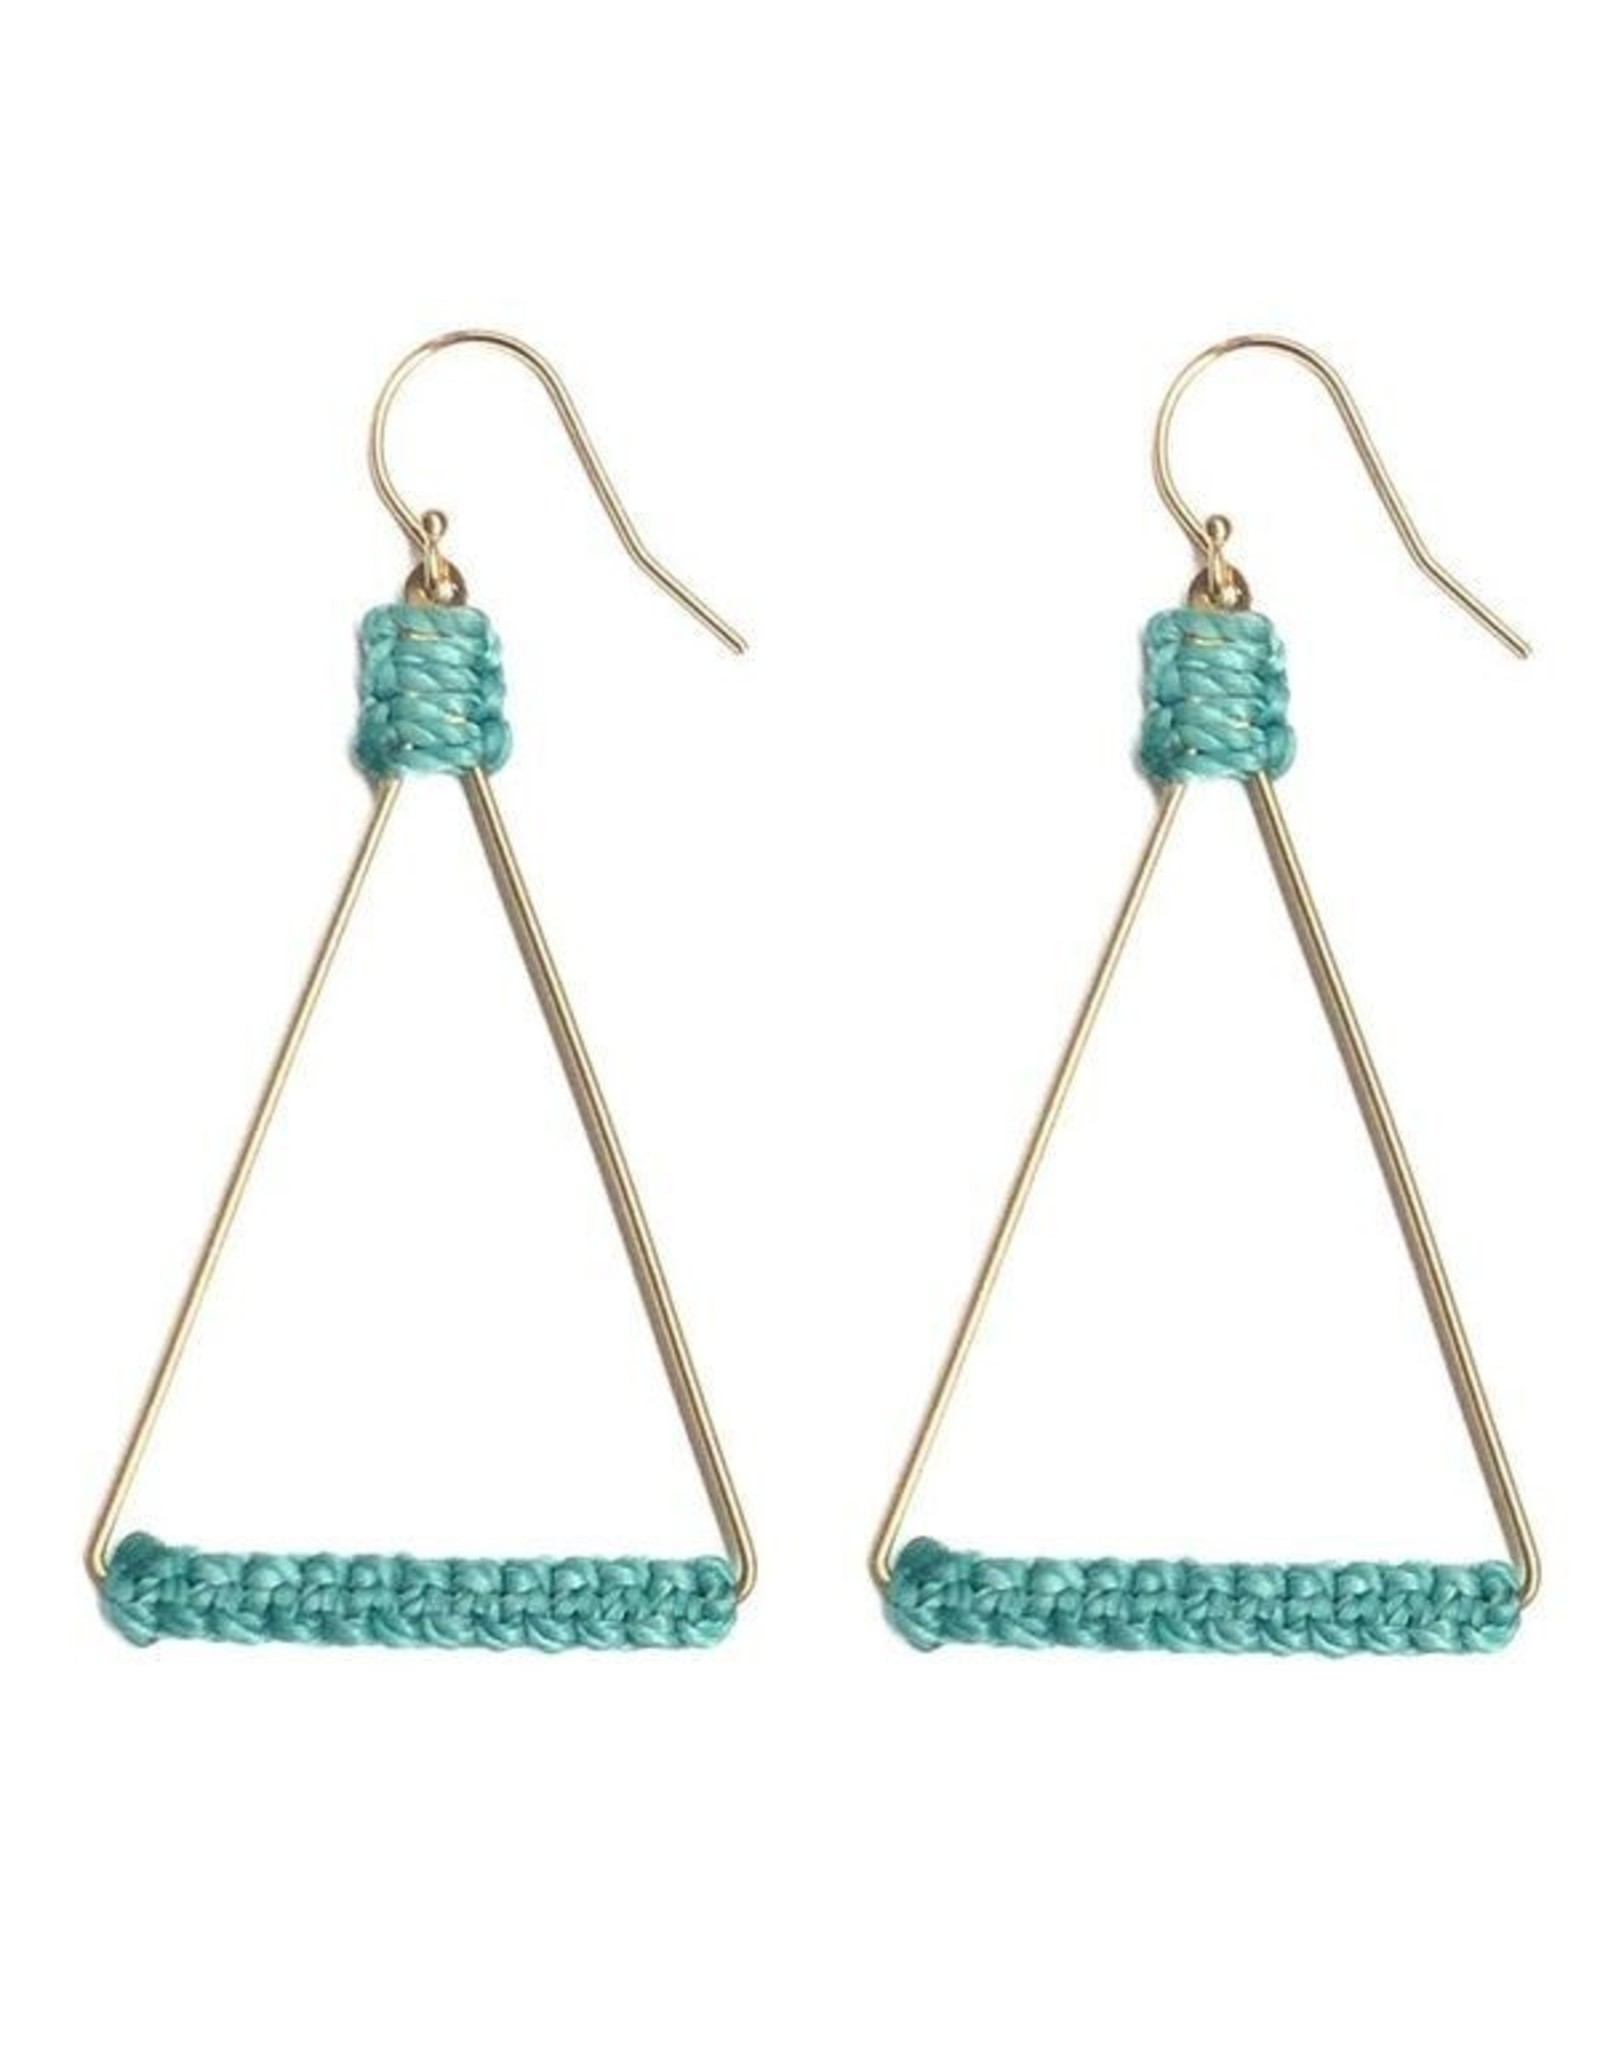 Brass Triangle Earrings with Turquoise Waxed Thread